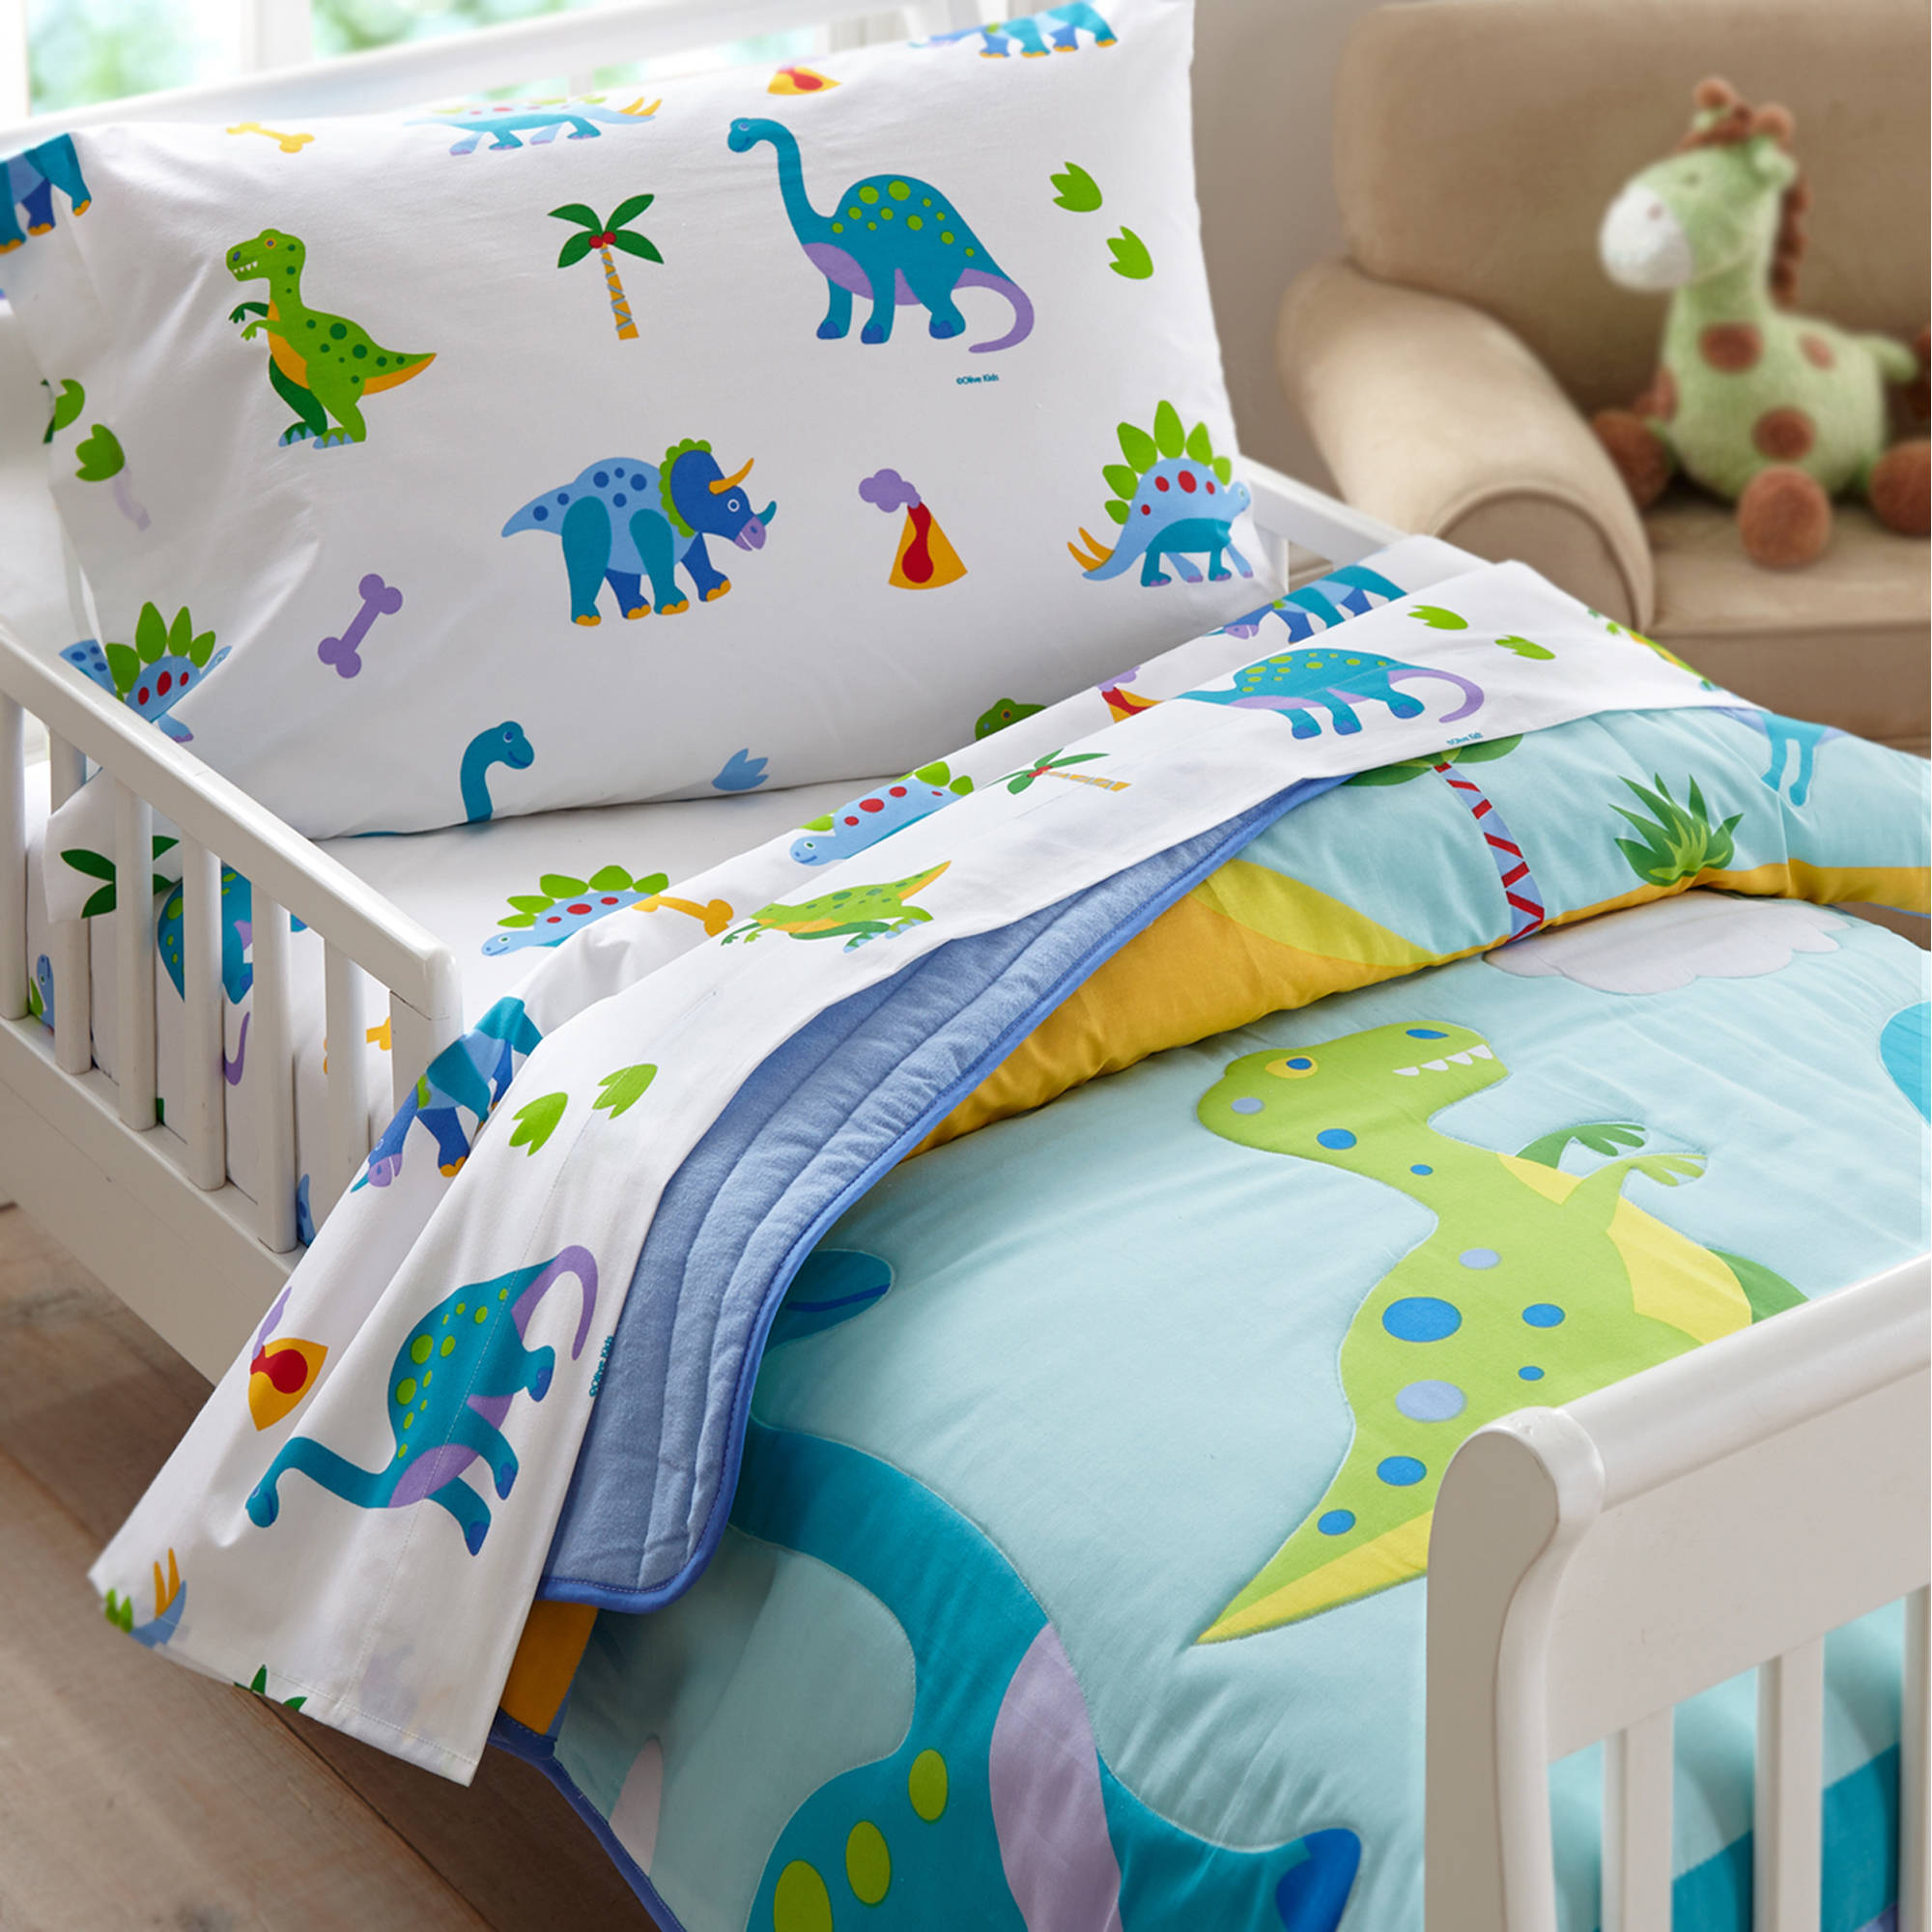 Olive Kids Dinosaur Land Toddler Bedding Comforter